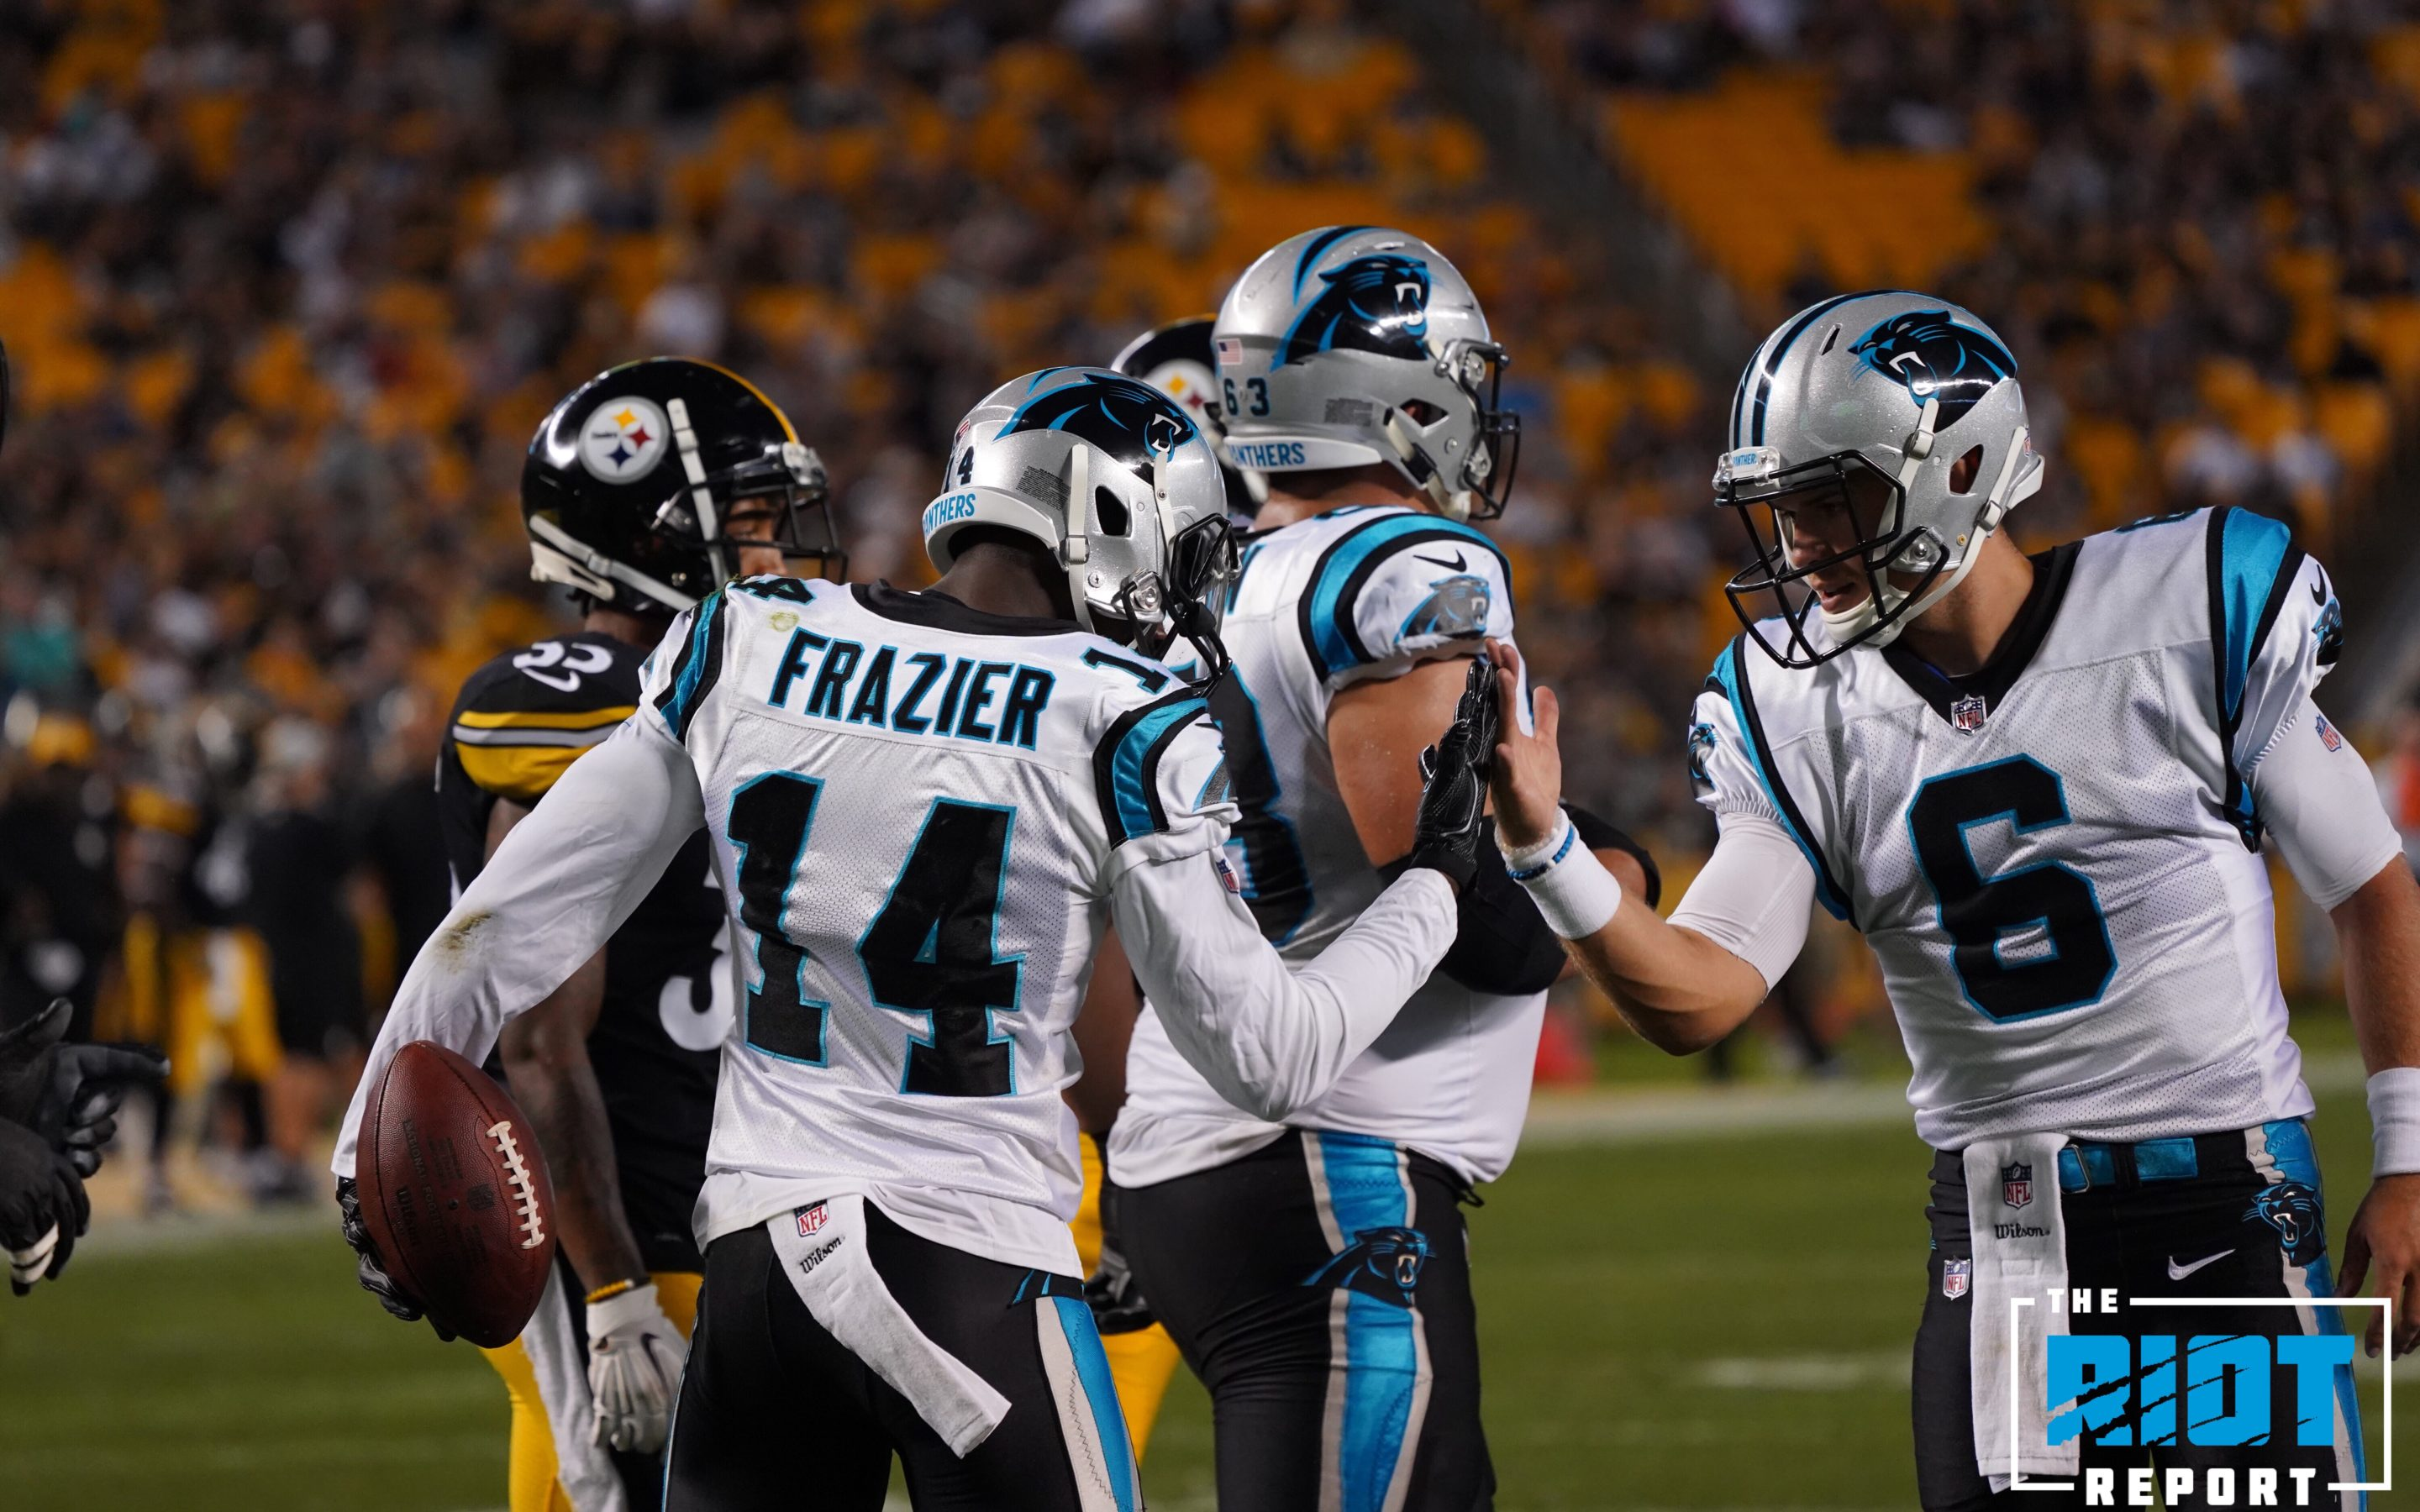 Carolina Panthers vs. Pittsburgh Steelers Report  ee4c32080